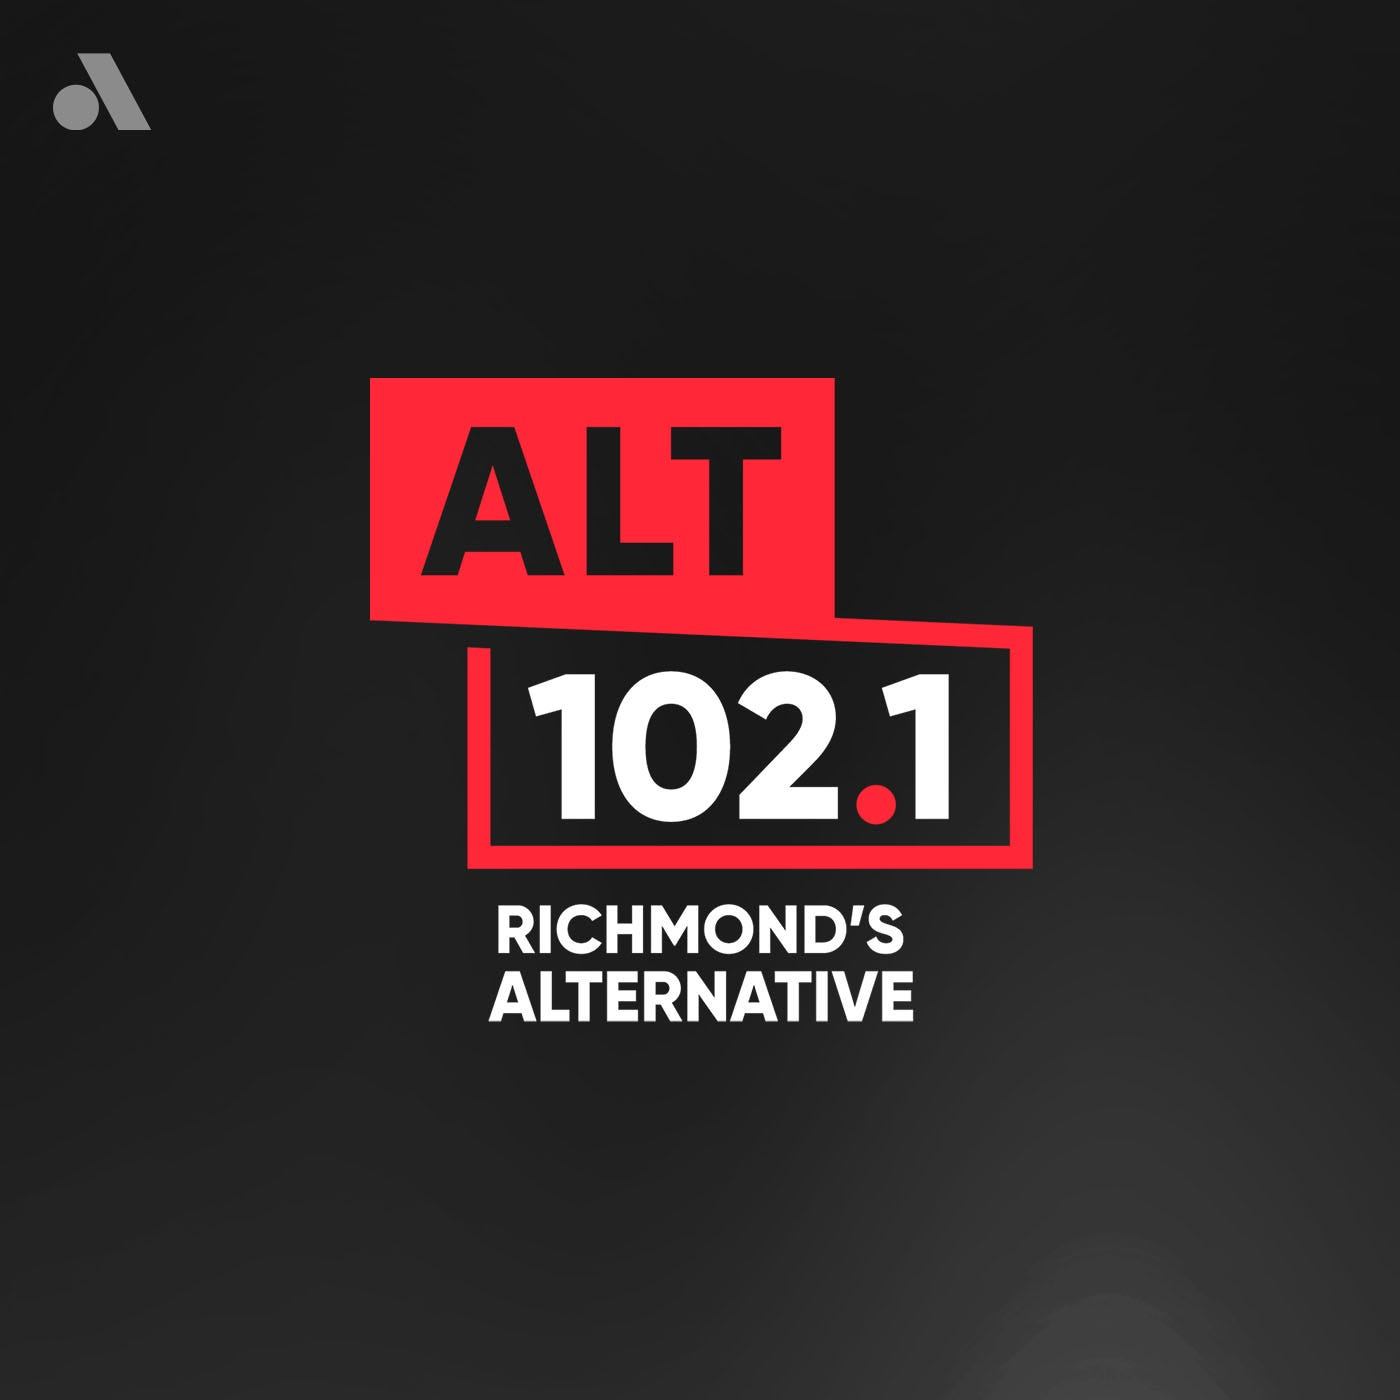 Alt 102.1 Richmond